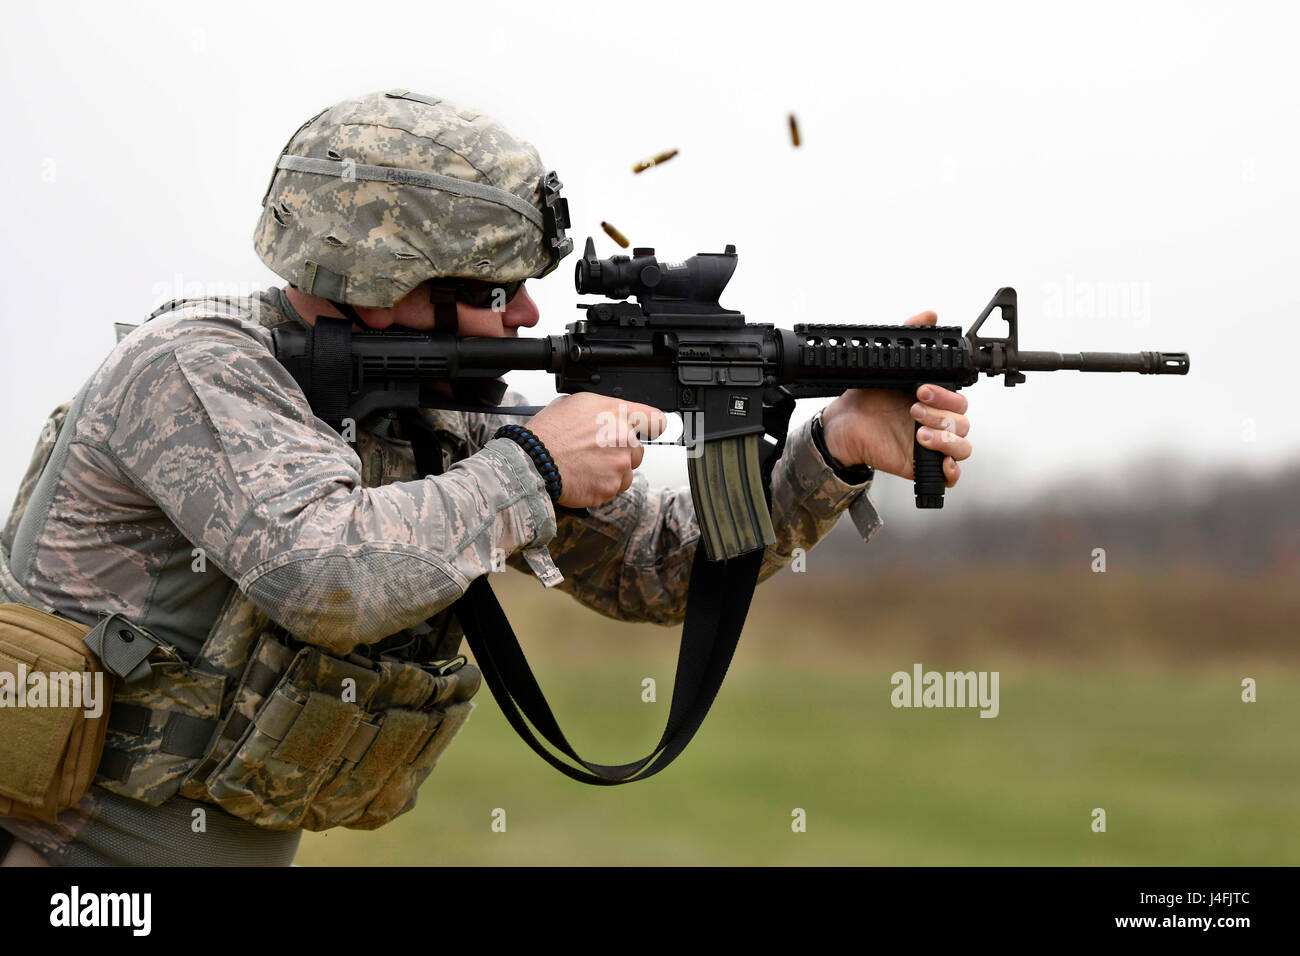 Usaf Security Forces Stock Photos & Usaf Security Forces